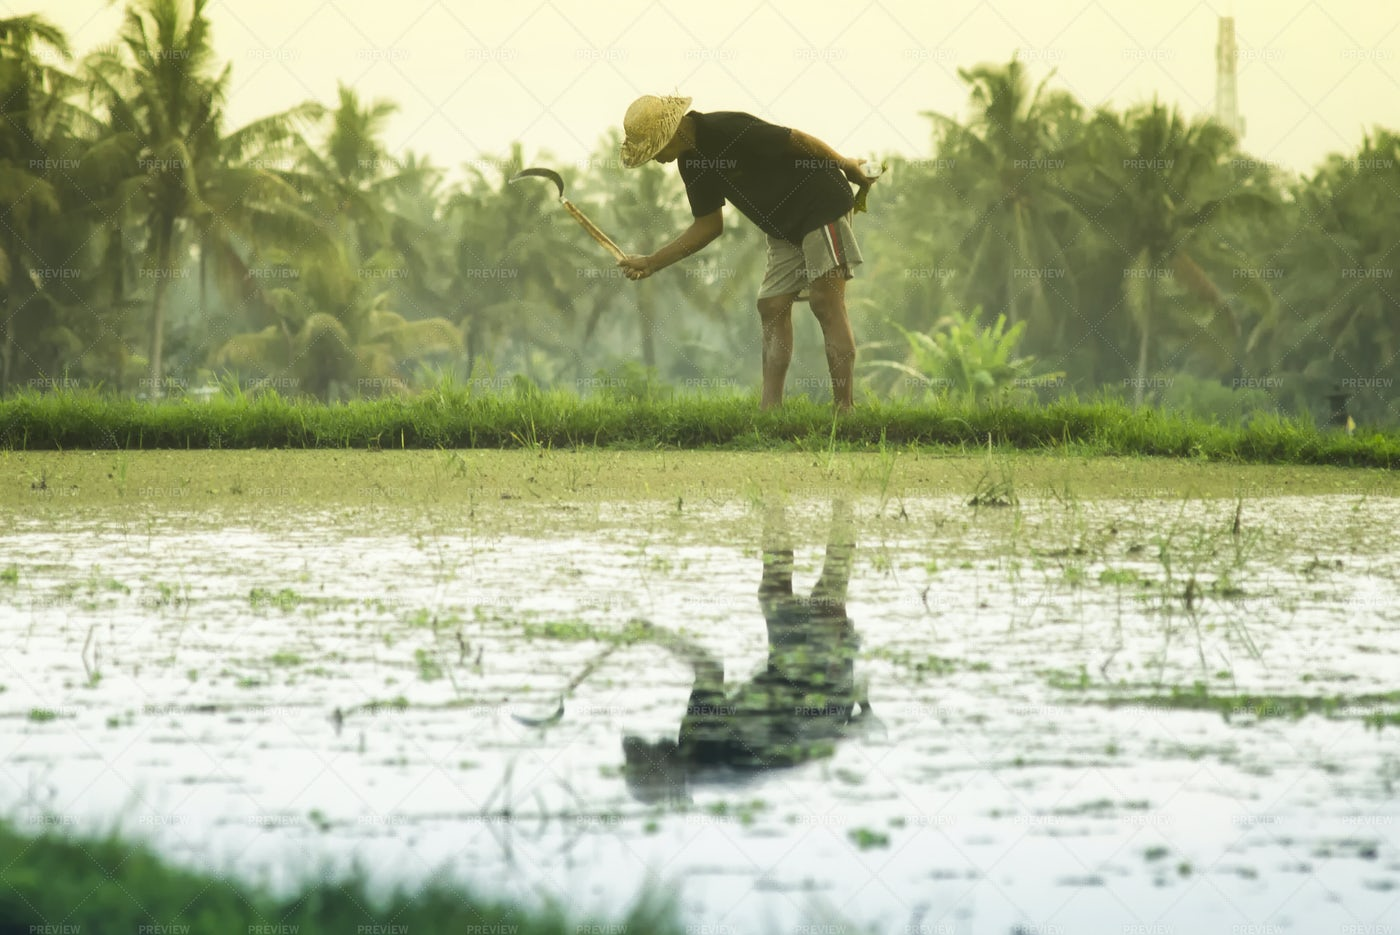 Indonesian Man Working On Rice Paddy: Stock Photos